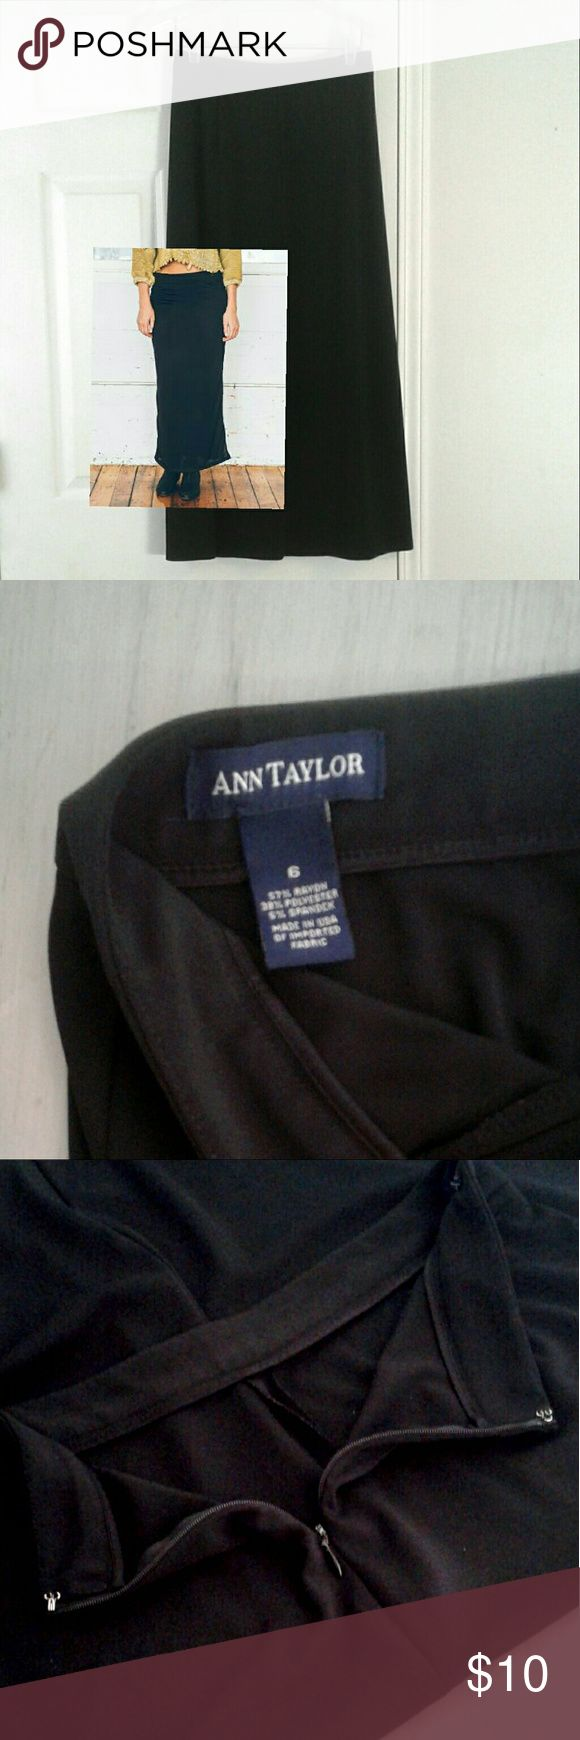 """Ann Taylor black jersey maxi skirt 6 Vintage Ann Taylor in good used condition, no stains, snags etc. From smoke free home.  Little over 1"""" banded waist, side zip w/hook and eye.  Measures 14"""" across waist and 35"""" long. Rayon/poly/spandex. Bundle and save!  Happy Poshing ; ) Ann Taylor Skirts Maxi"""